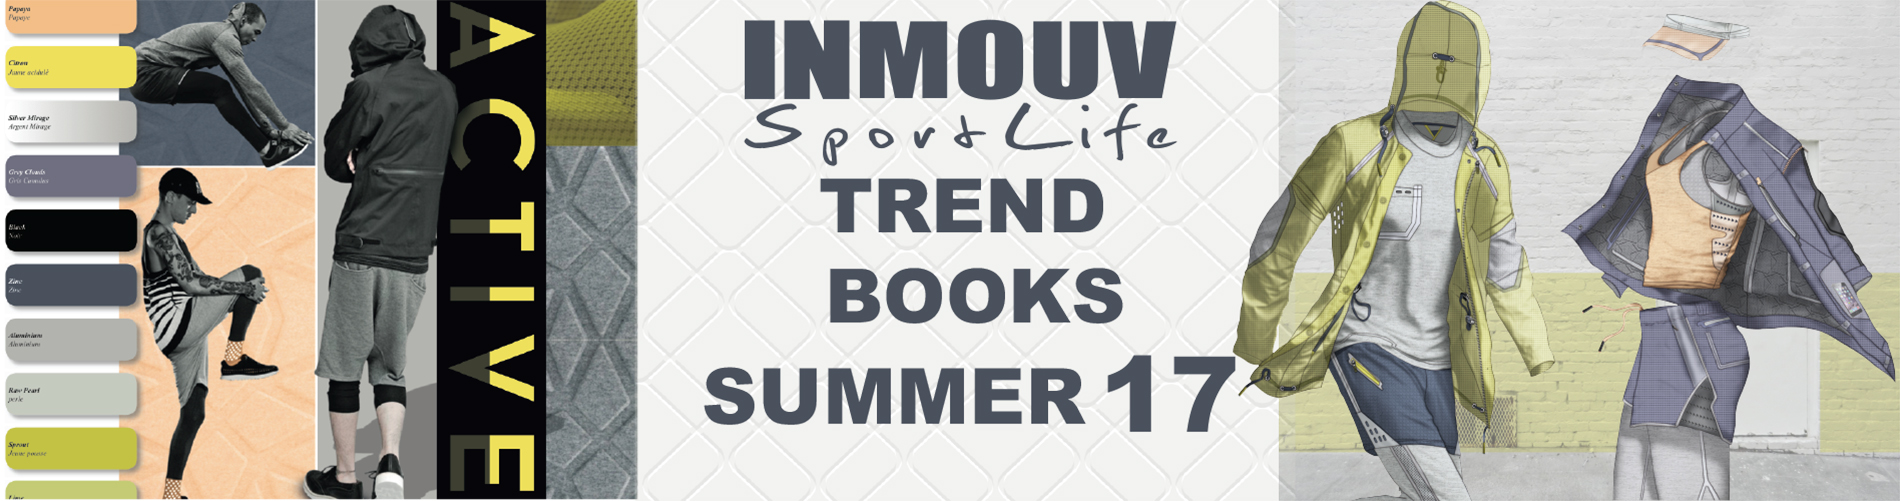 Inmouv Sport Life Trend Book banner image